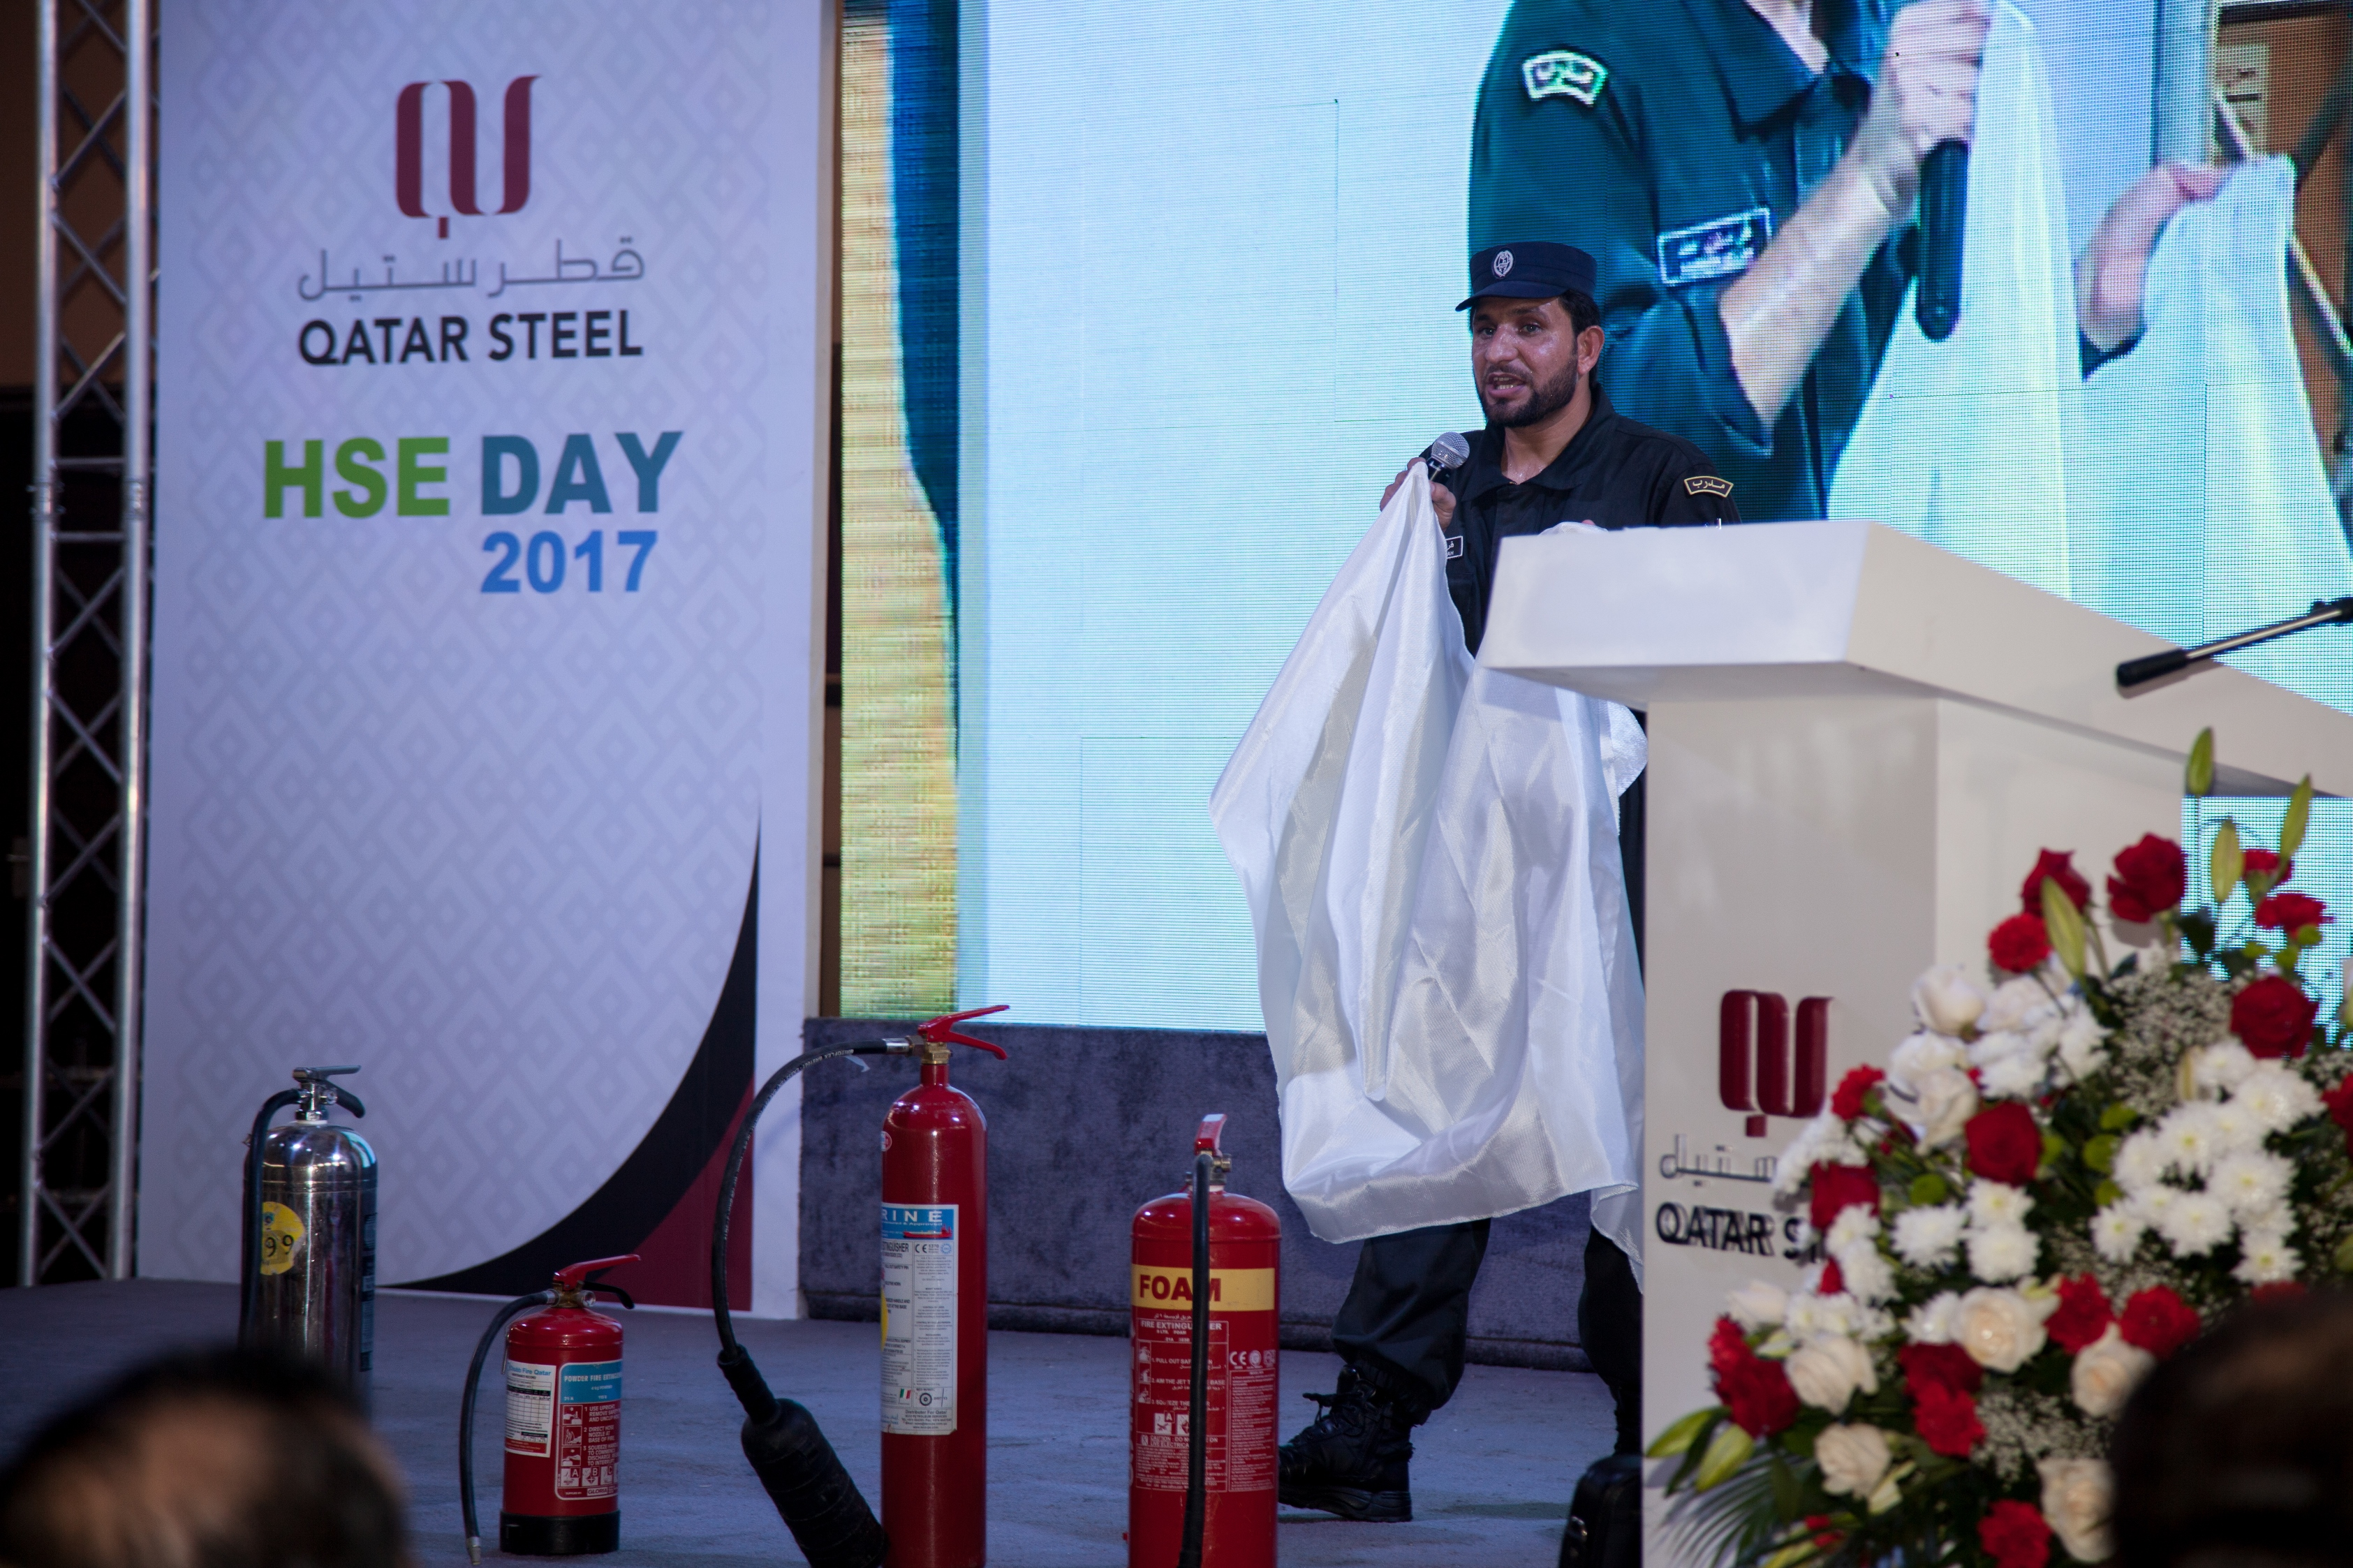 Qatar Steel Celebrates HSE Day